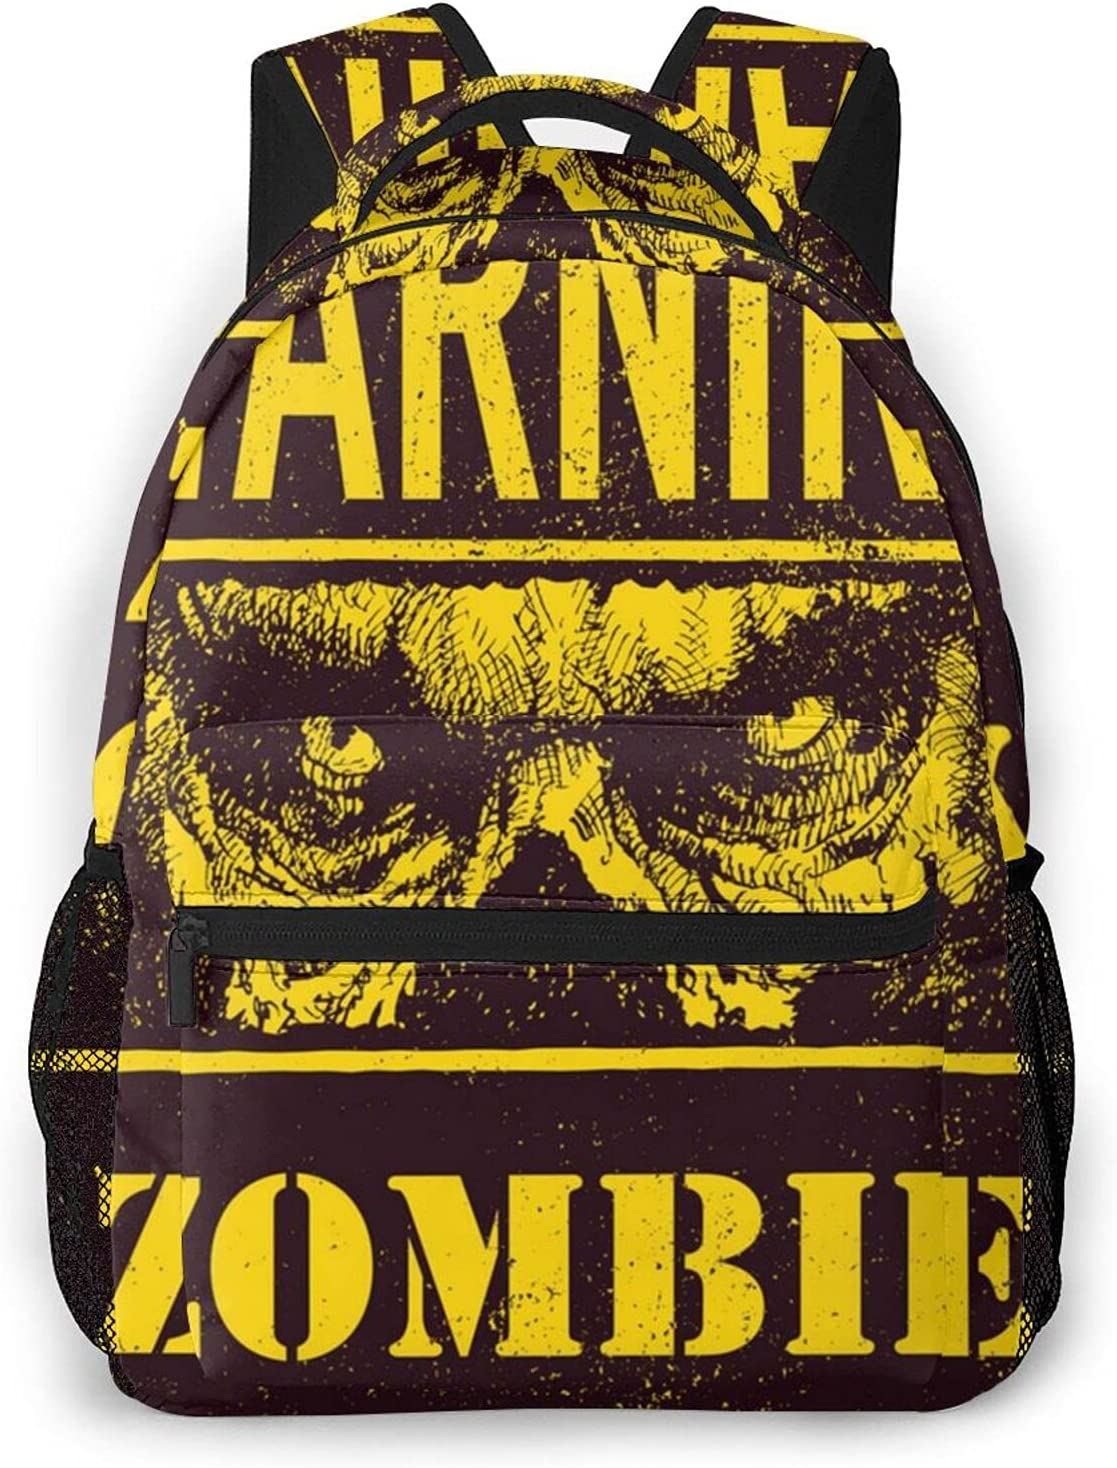 Poster Zombie Outbreak Travel Attention brand Some reservation Daypack Laptop Ba Student Rucksack